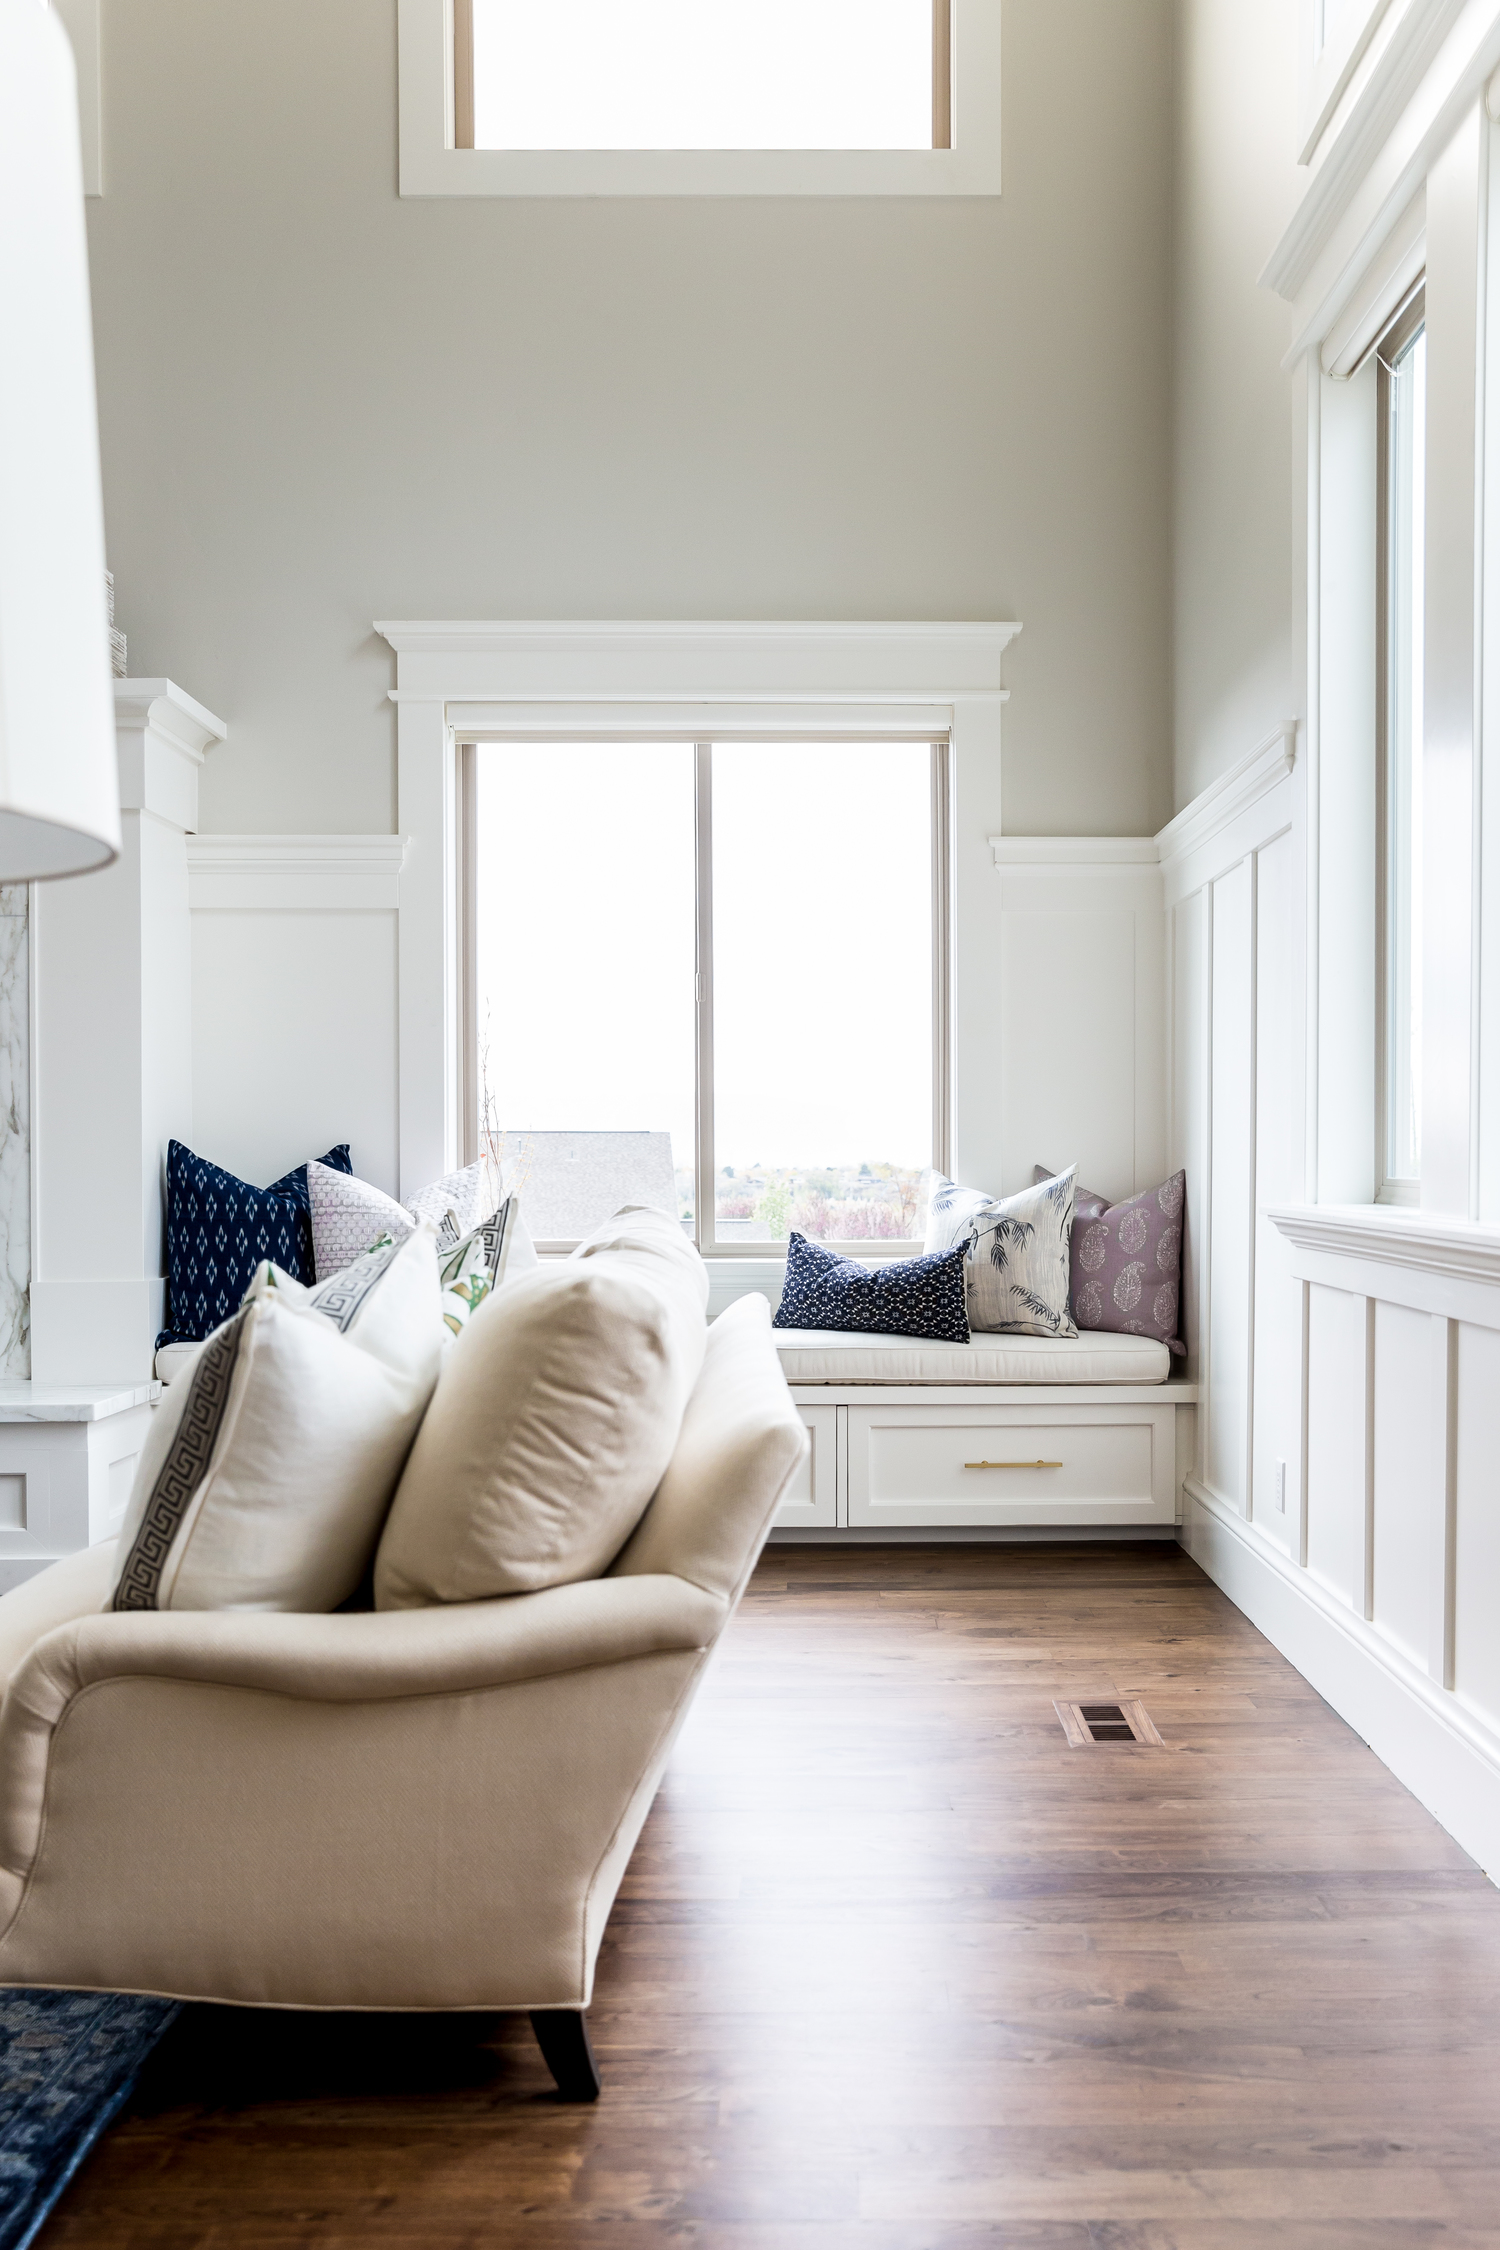 Built in daybed by window in living room